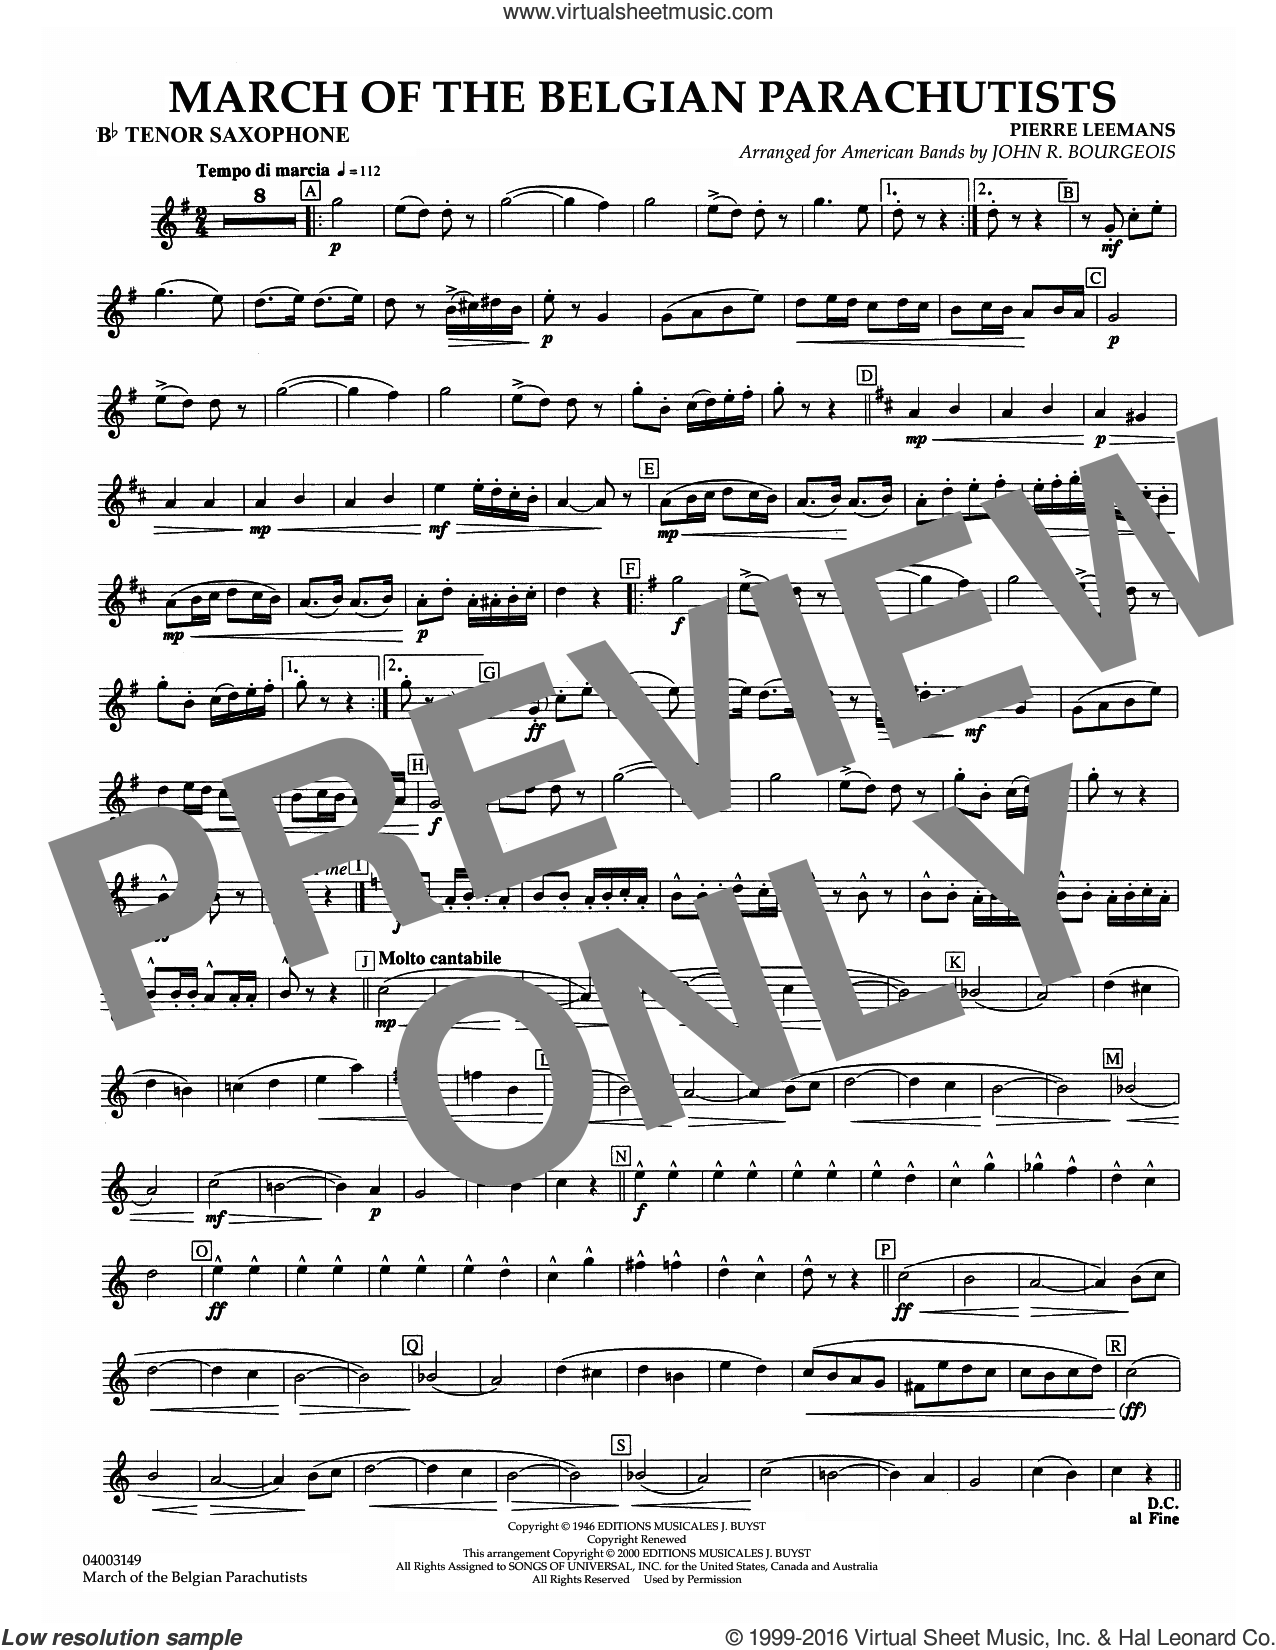 March Of The Belgian Parachutists sheet music for concert band (Bb tenor saxophone) by Pierre Leemans